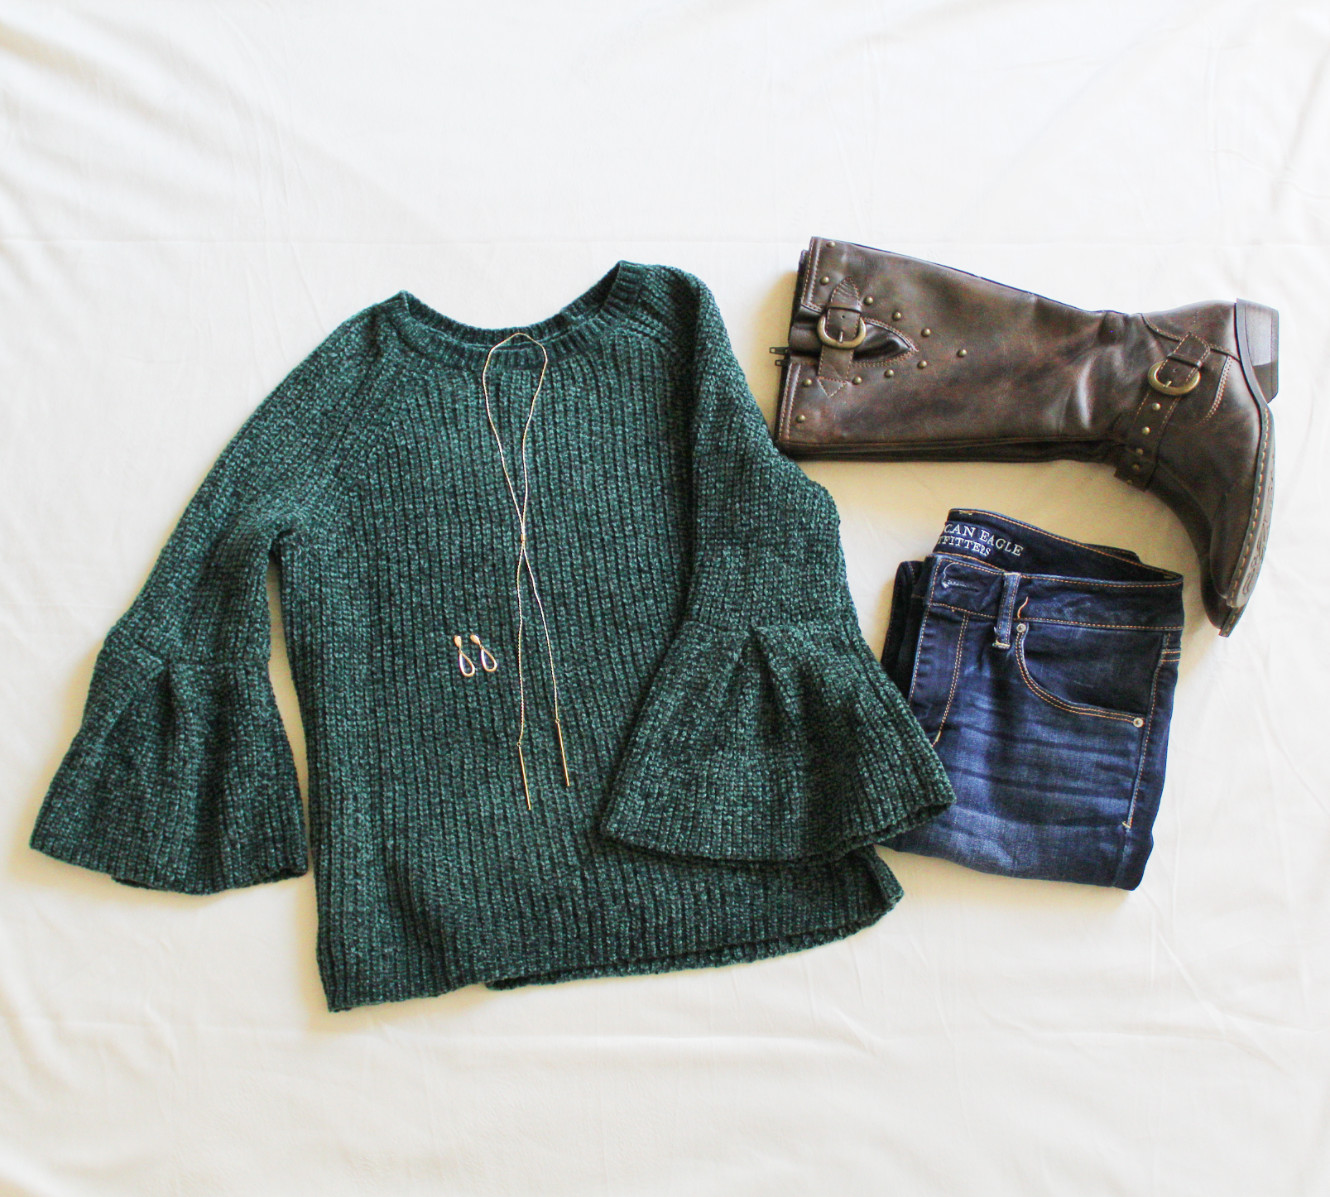 Green Sweater, Jeans, Boots, Earrings, And Necklace